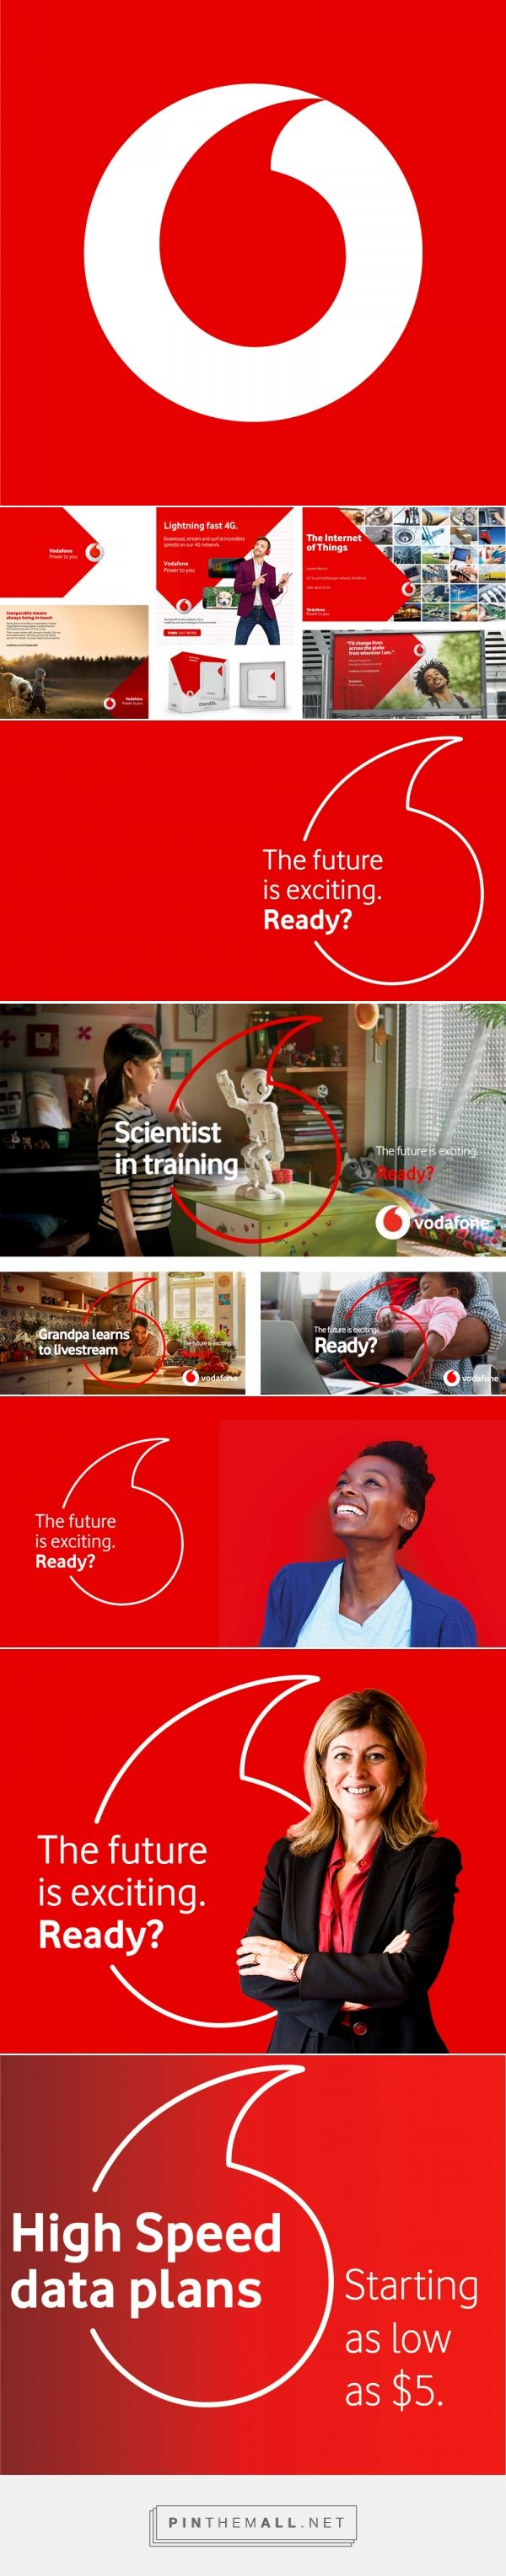 Brand New: New Logo for Vodafone by Brand Union... - a grouped images picture - Pin Them All